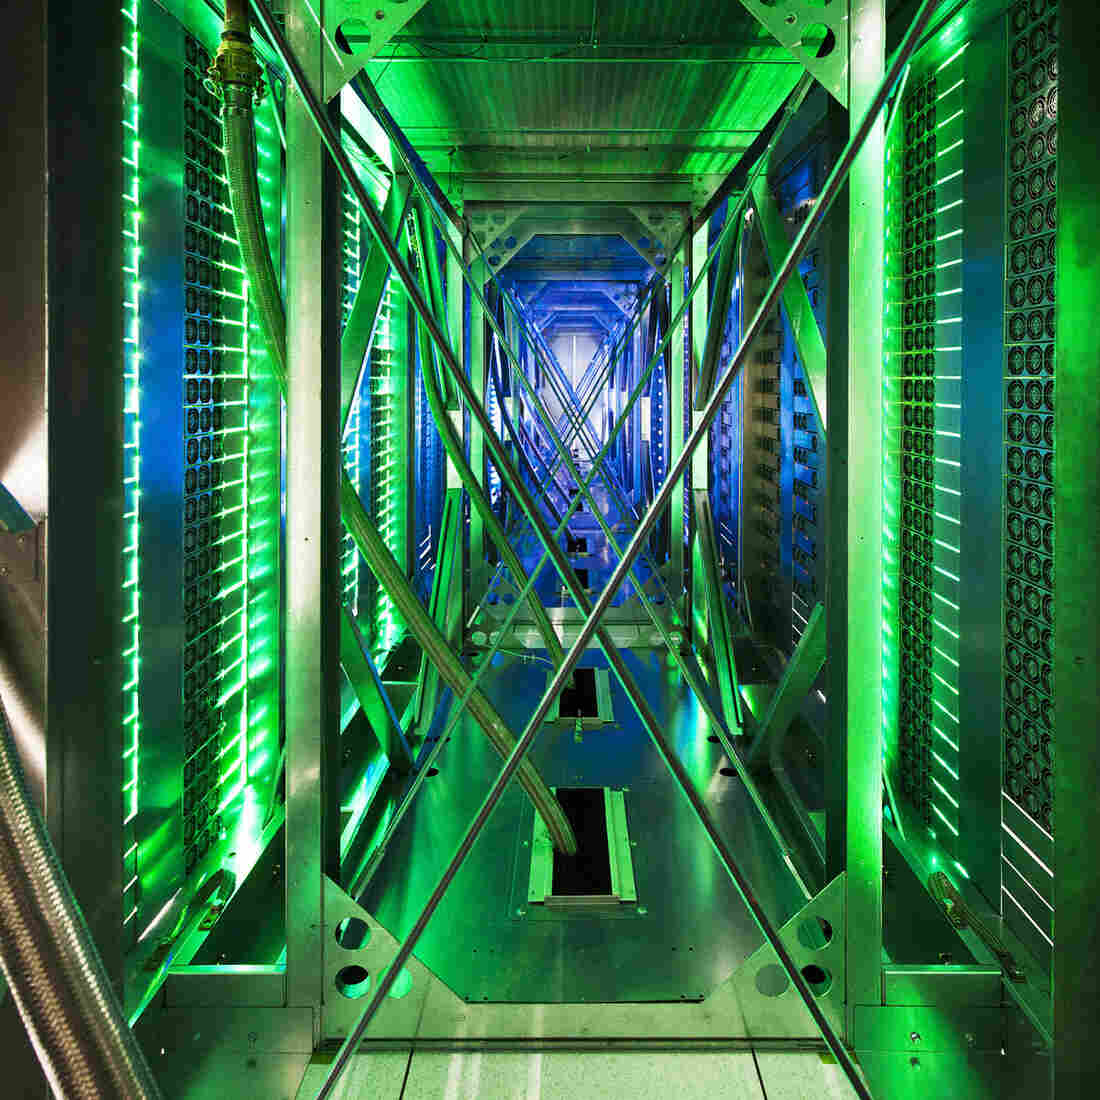 A Google data center in Oklahoma is shown. Google recently slashed prices for its cloud services; Amazon responded by cutting its cloud prices.